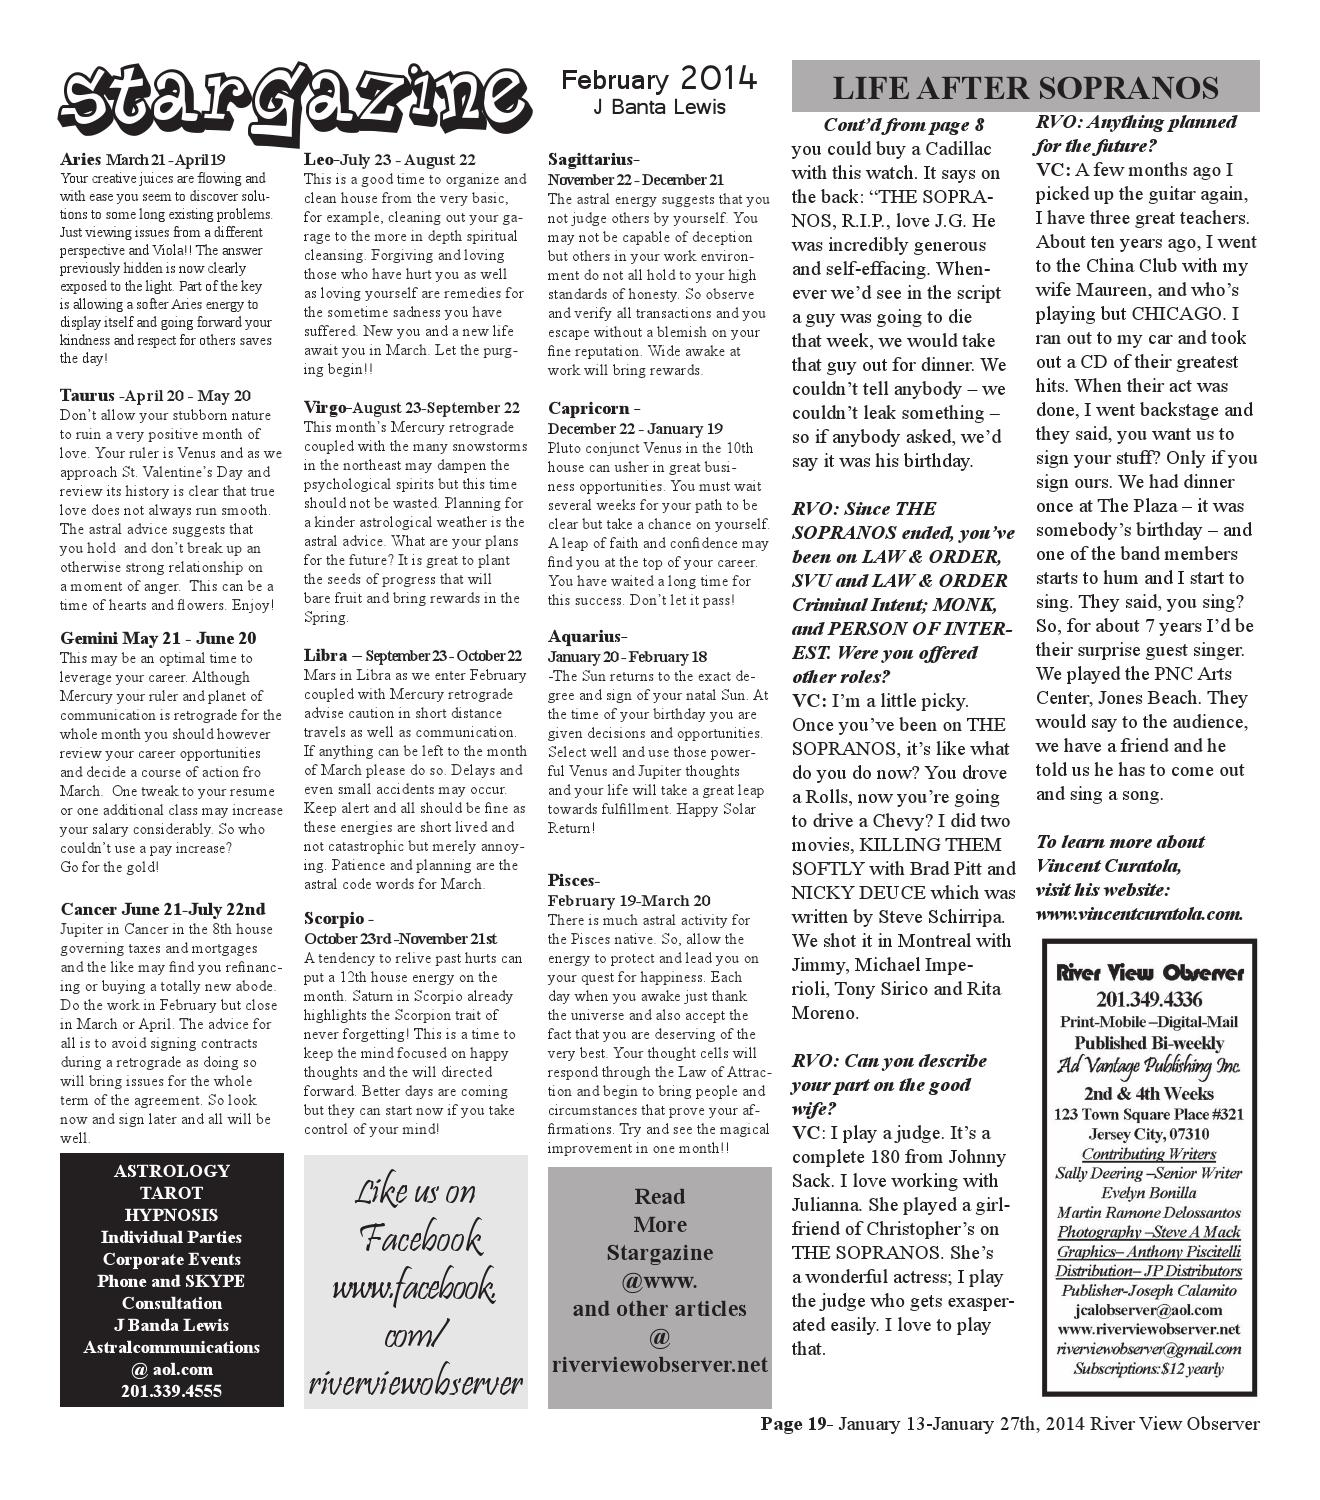 February 10 to february 27, 2014 river view observer by Ad